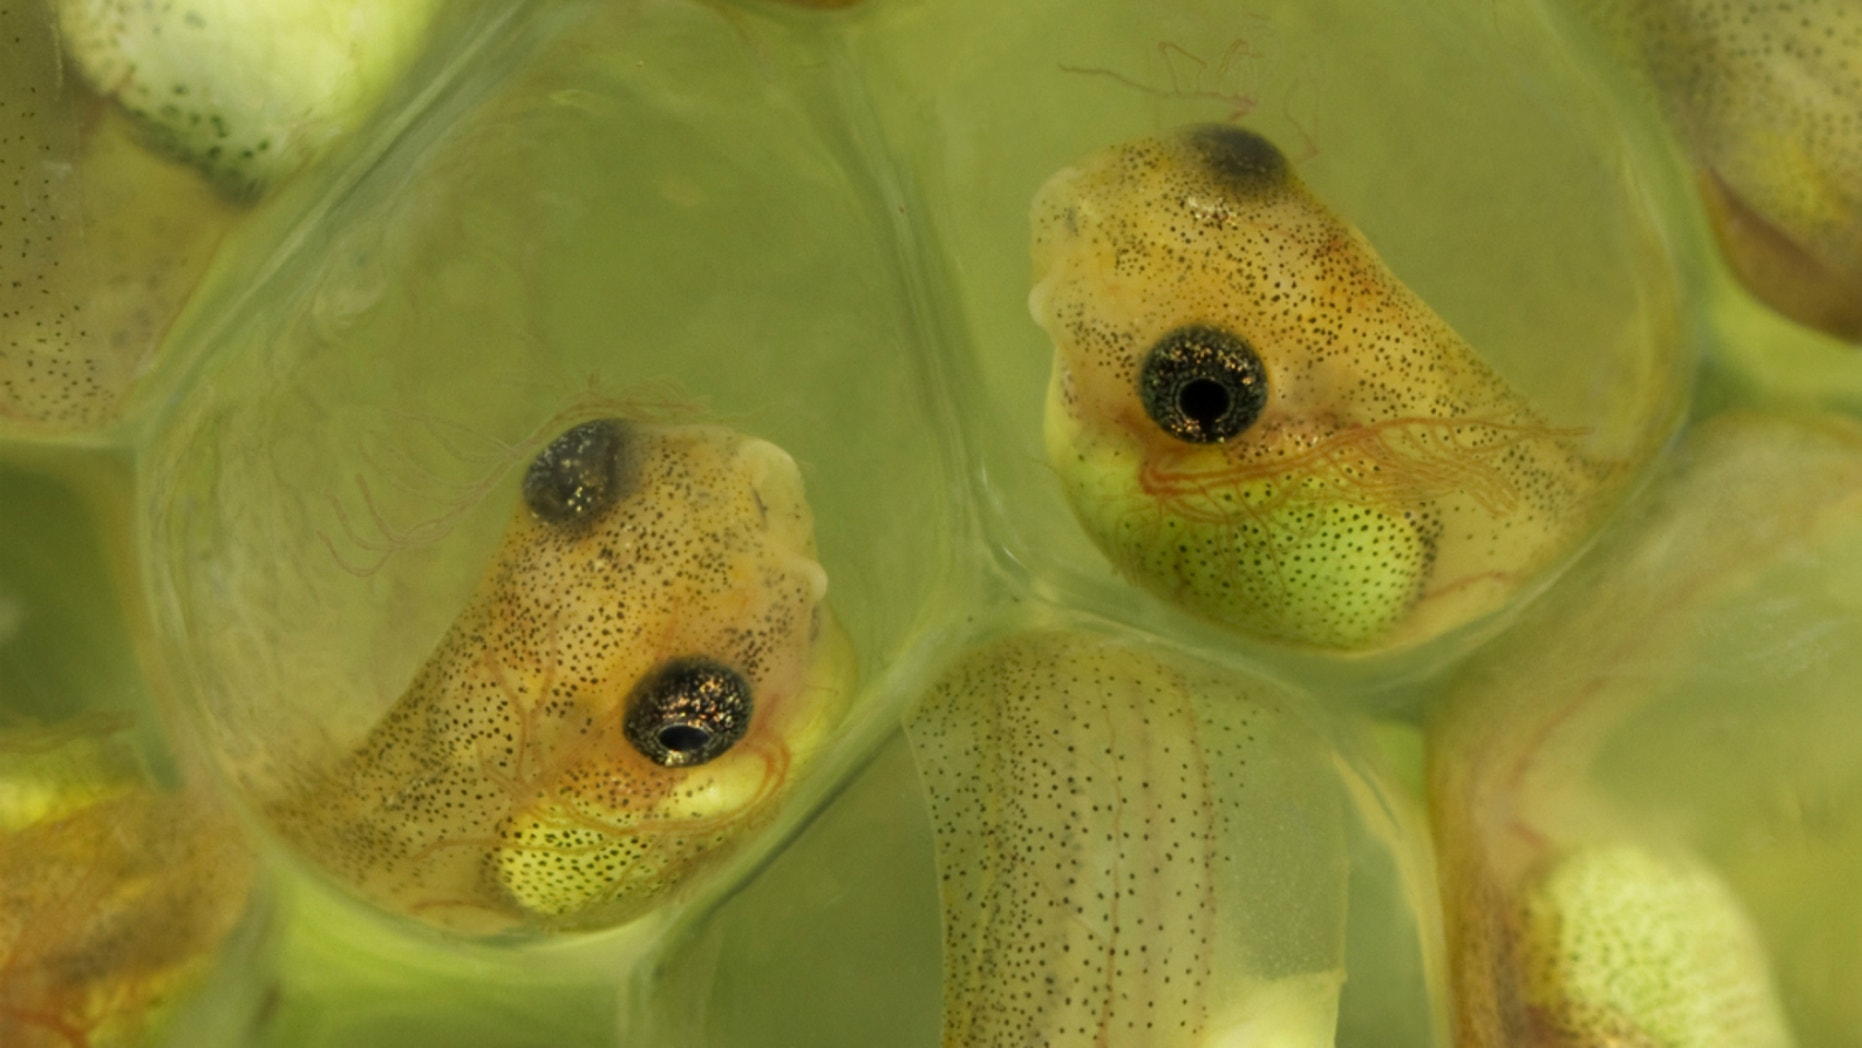 Red-eyed tree frog embryos are capable of hatching prematurely if necessary. Otherwise, they continue to develop in safety, in their eggs.